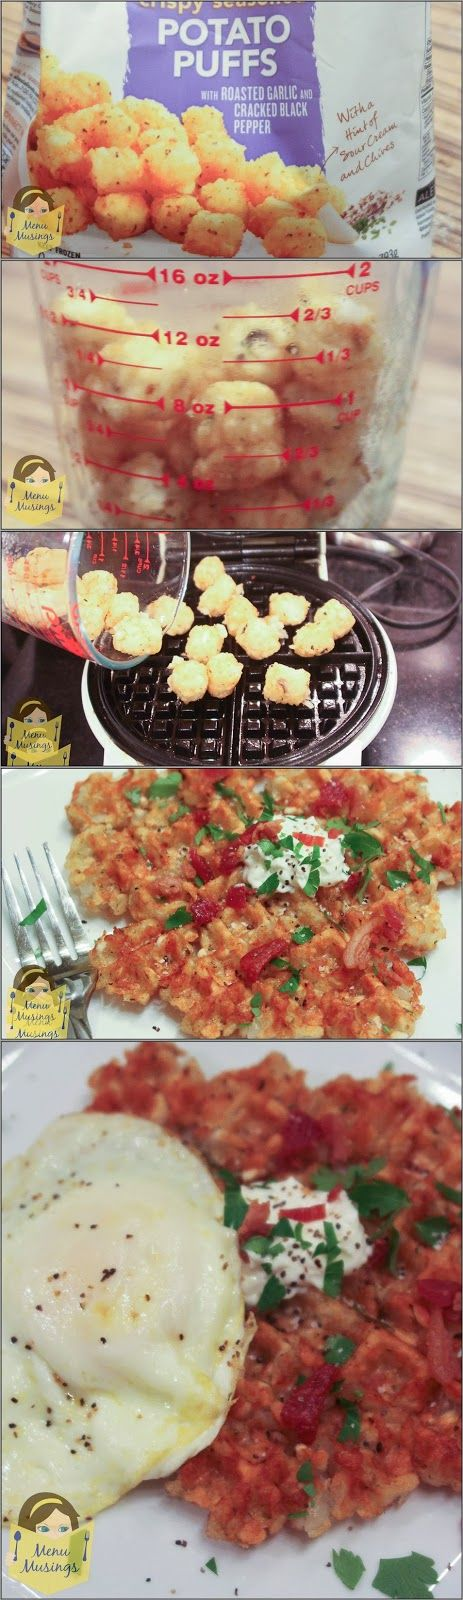 Menu Musings of a Modern American Mom: Waffle Iron Tater Tot Hash Browns